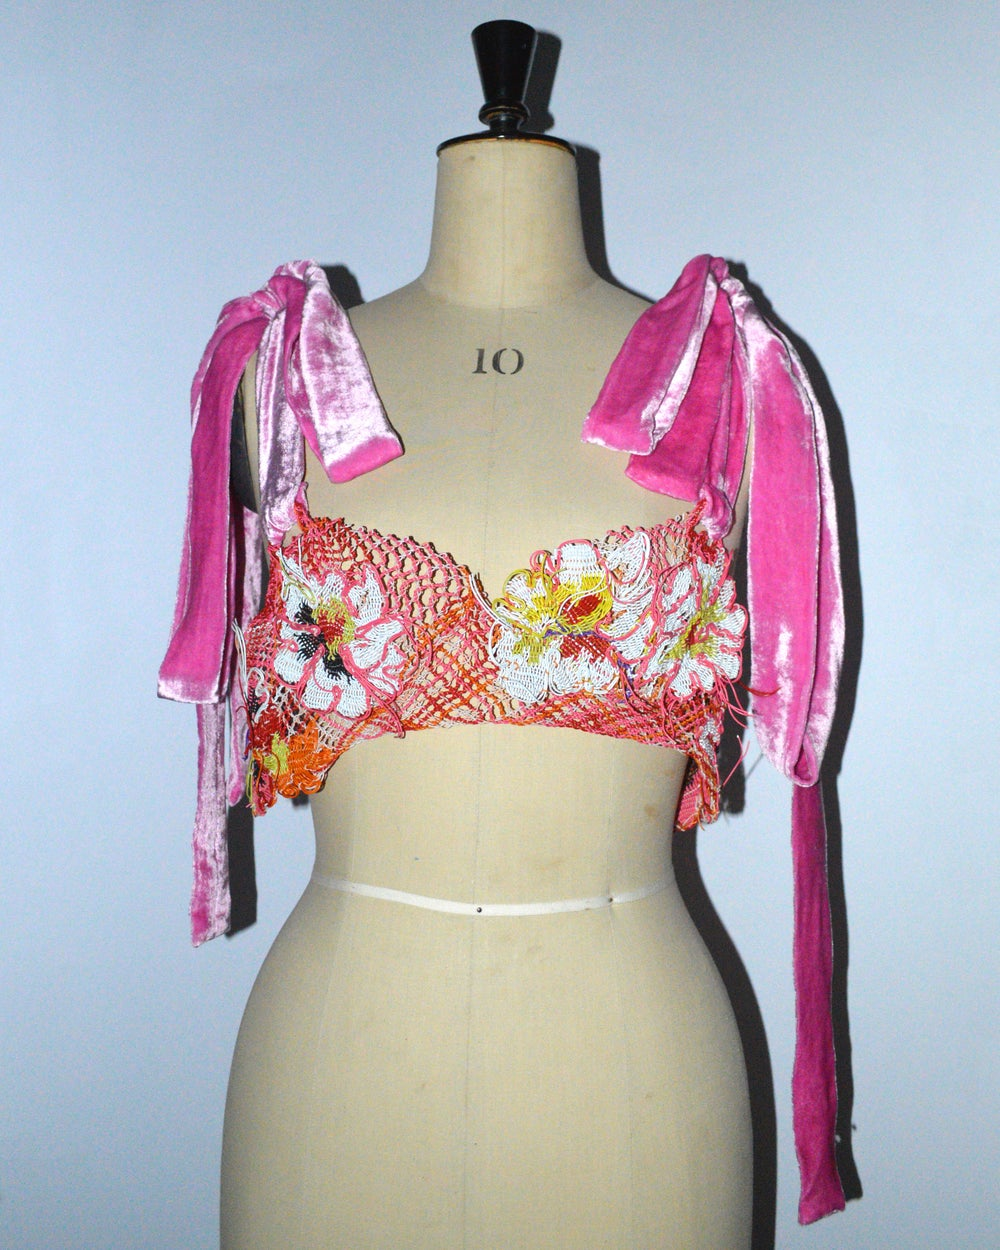 Recycled Wire Lace Bra with Adjustable Pink Velvet Straps and Vintage Button Closure